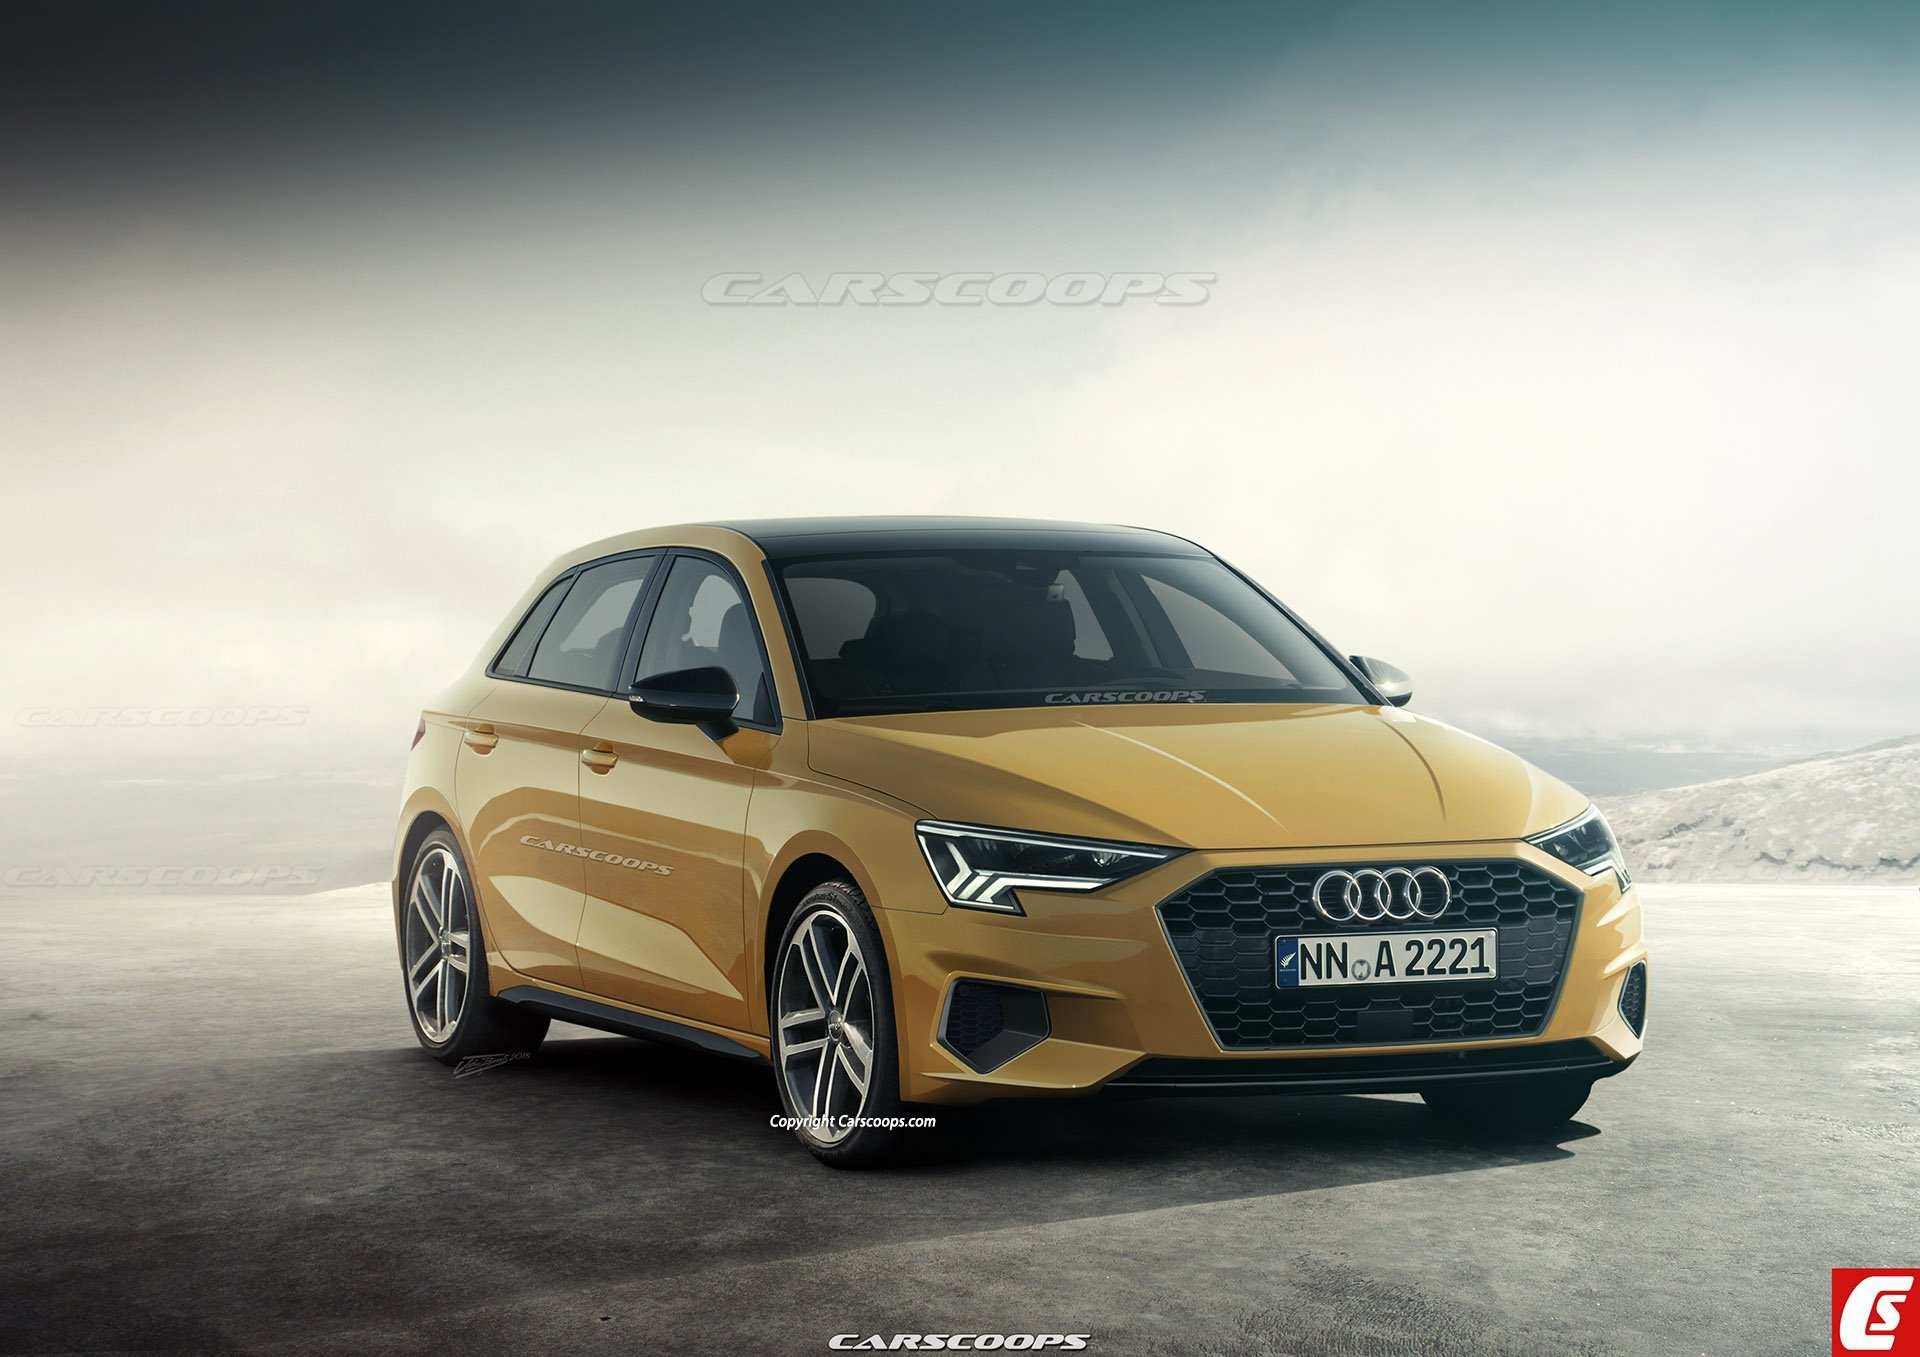 74 Great 2019 Audi Hatchback Concept for 2019 Audi Hatchback